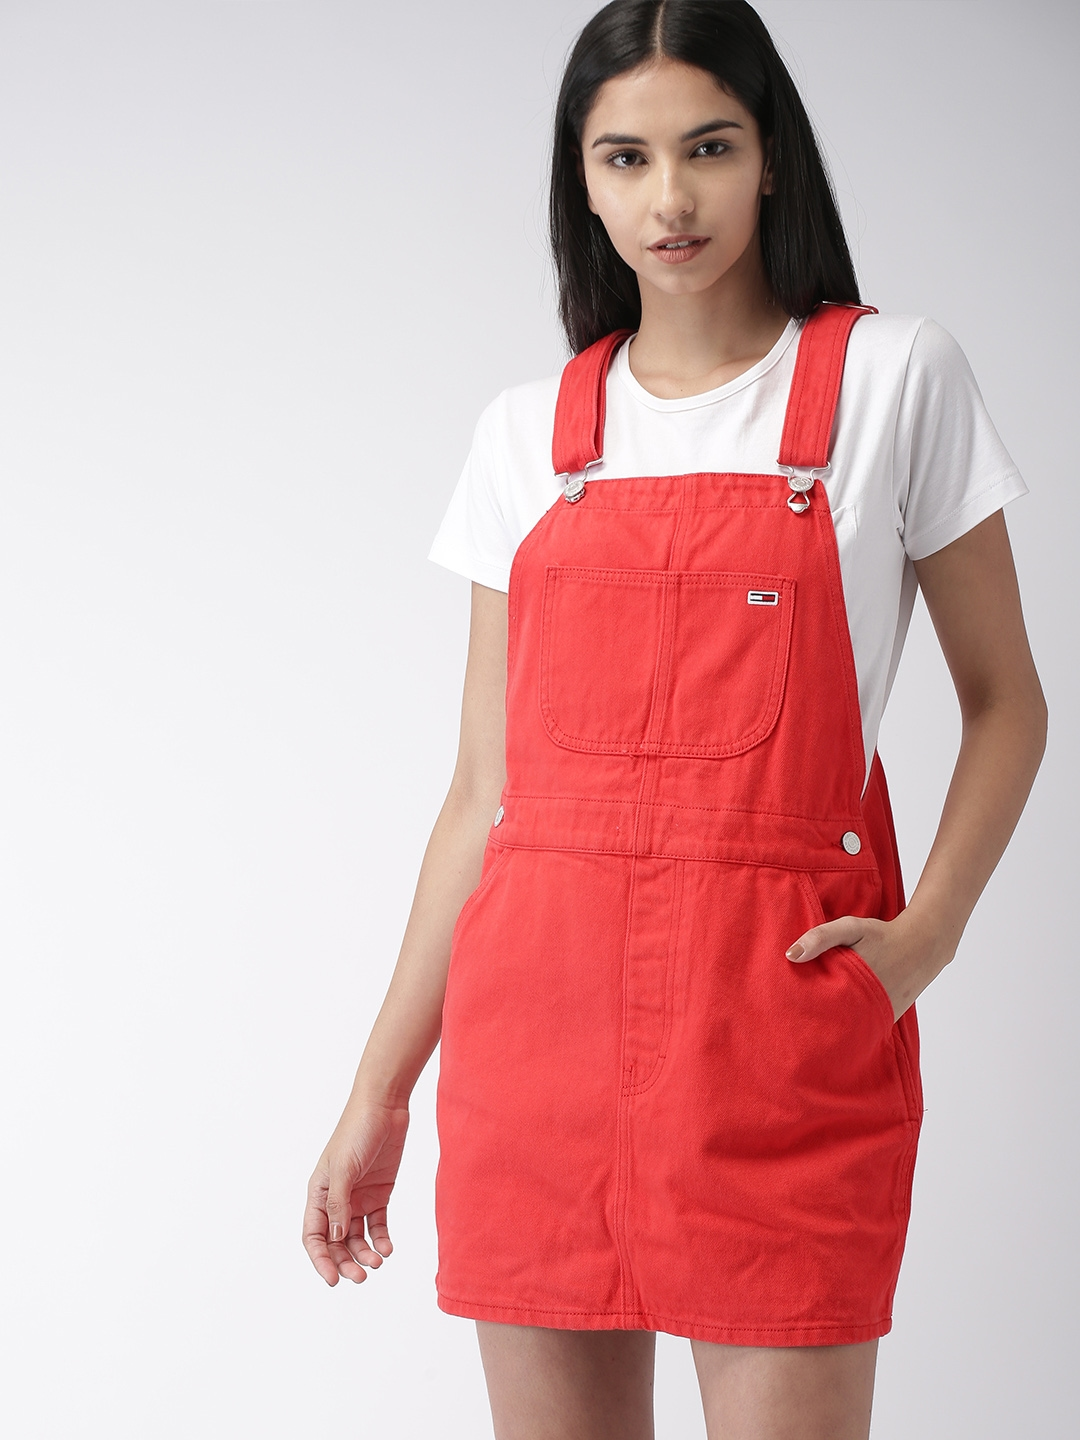 4e03e9982e7 Buy Tommy Hilfiger Women Red Solid Denim Dungarees - Dungarees for ...